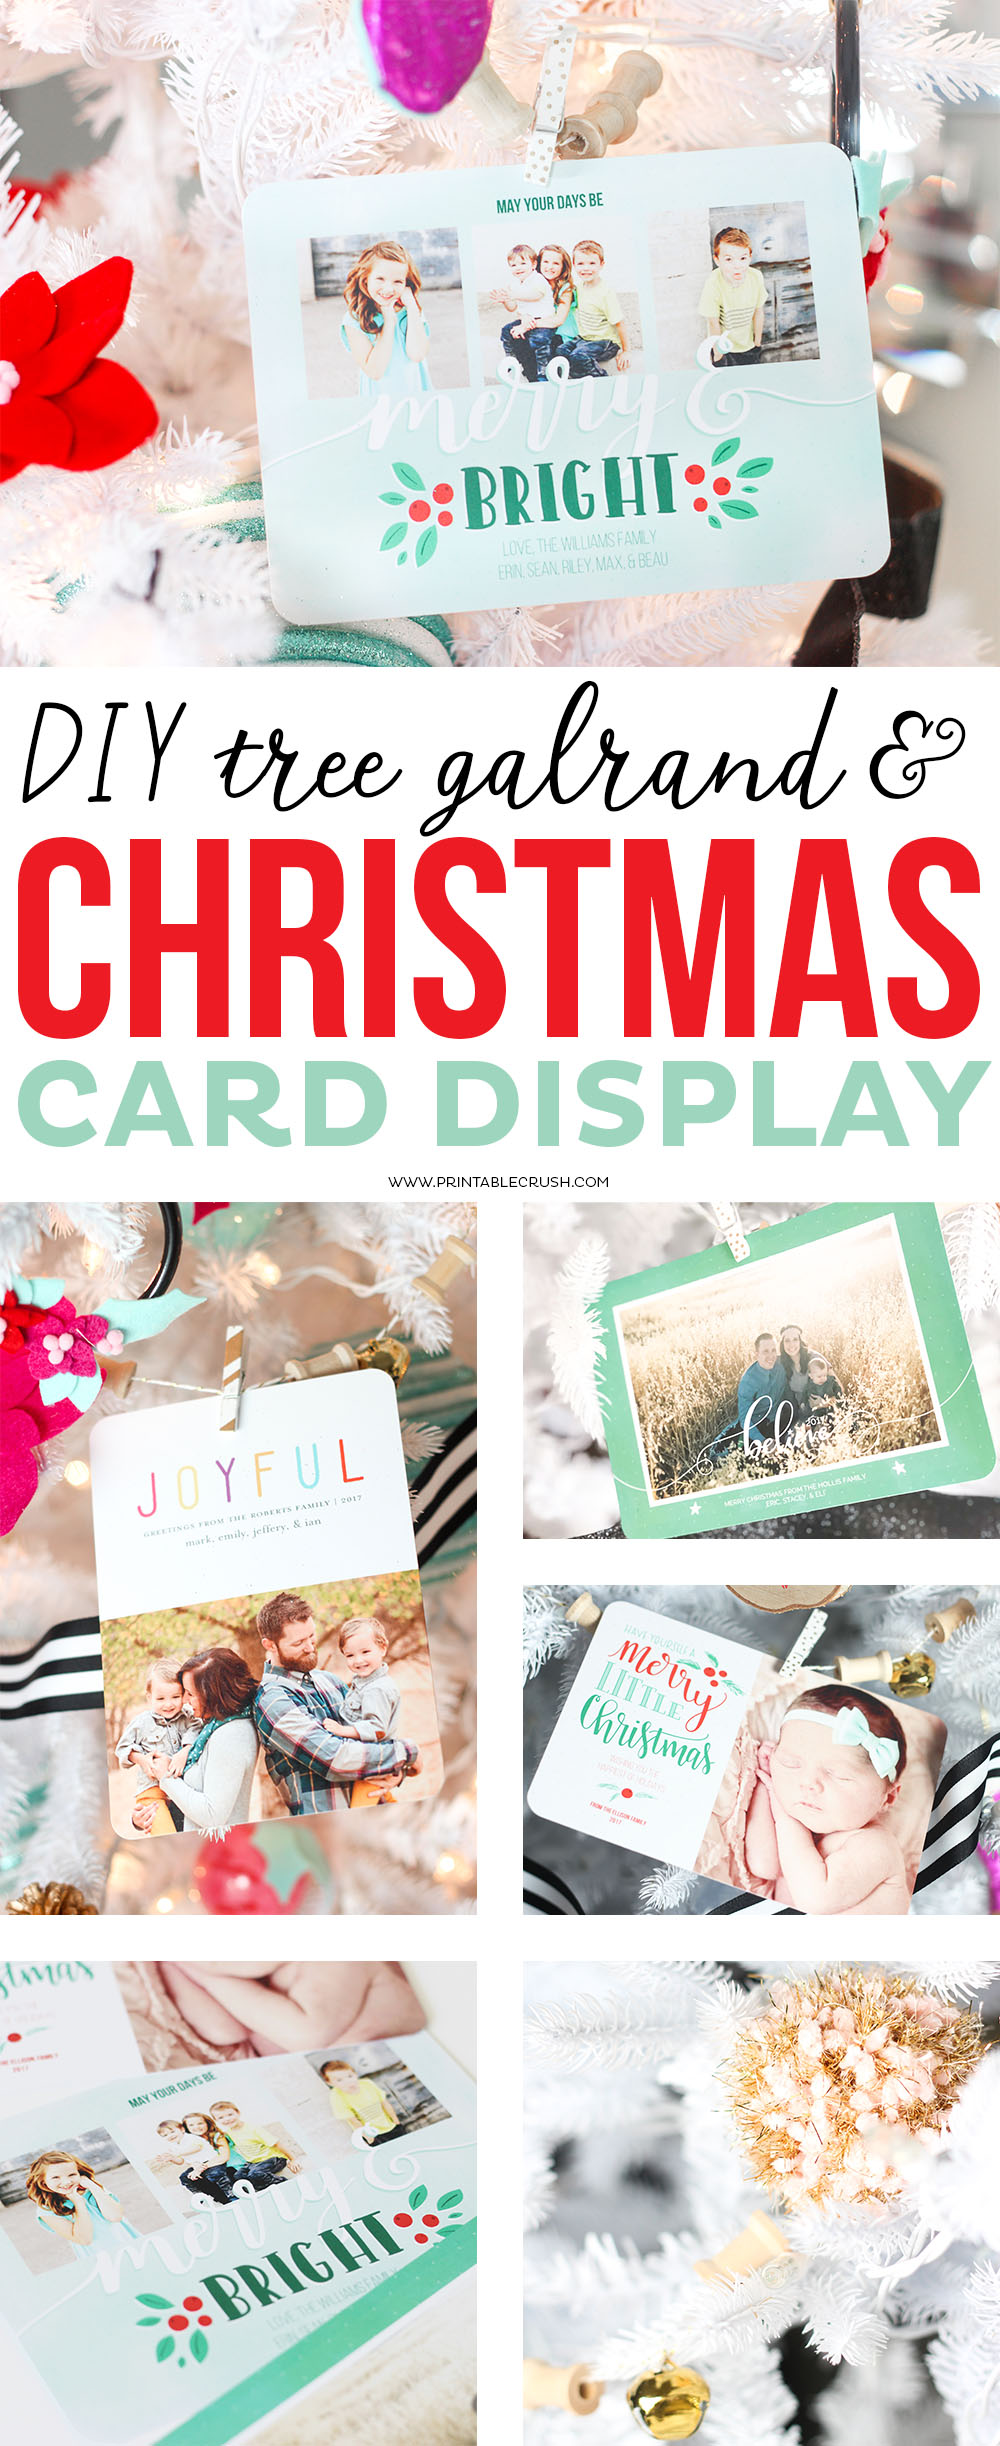 Give your Christmas Tree a personal touch this year with this super easy DIY Tree Garland Christmas Card Display! Includes fun elements like pom poms and jingle bells!